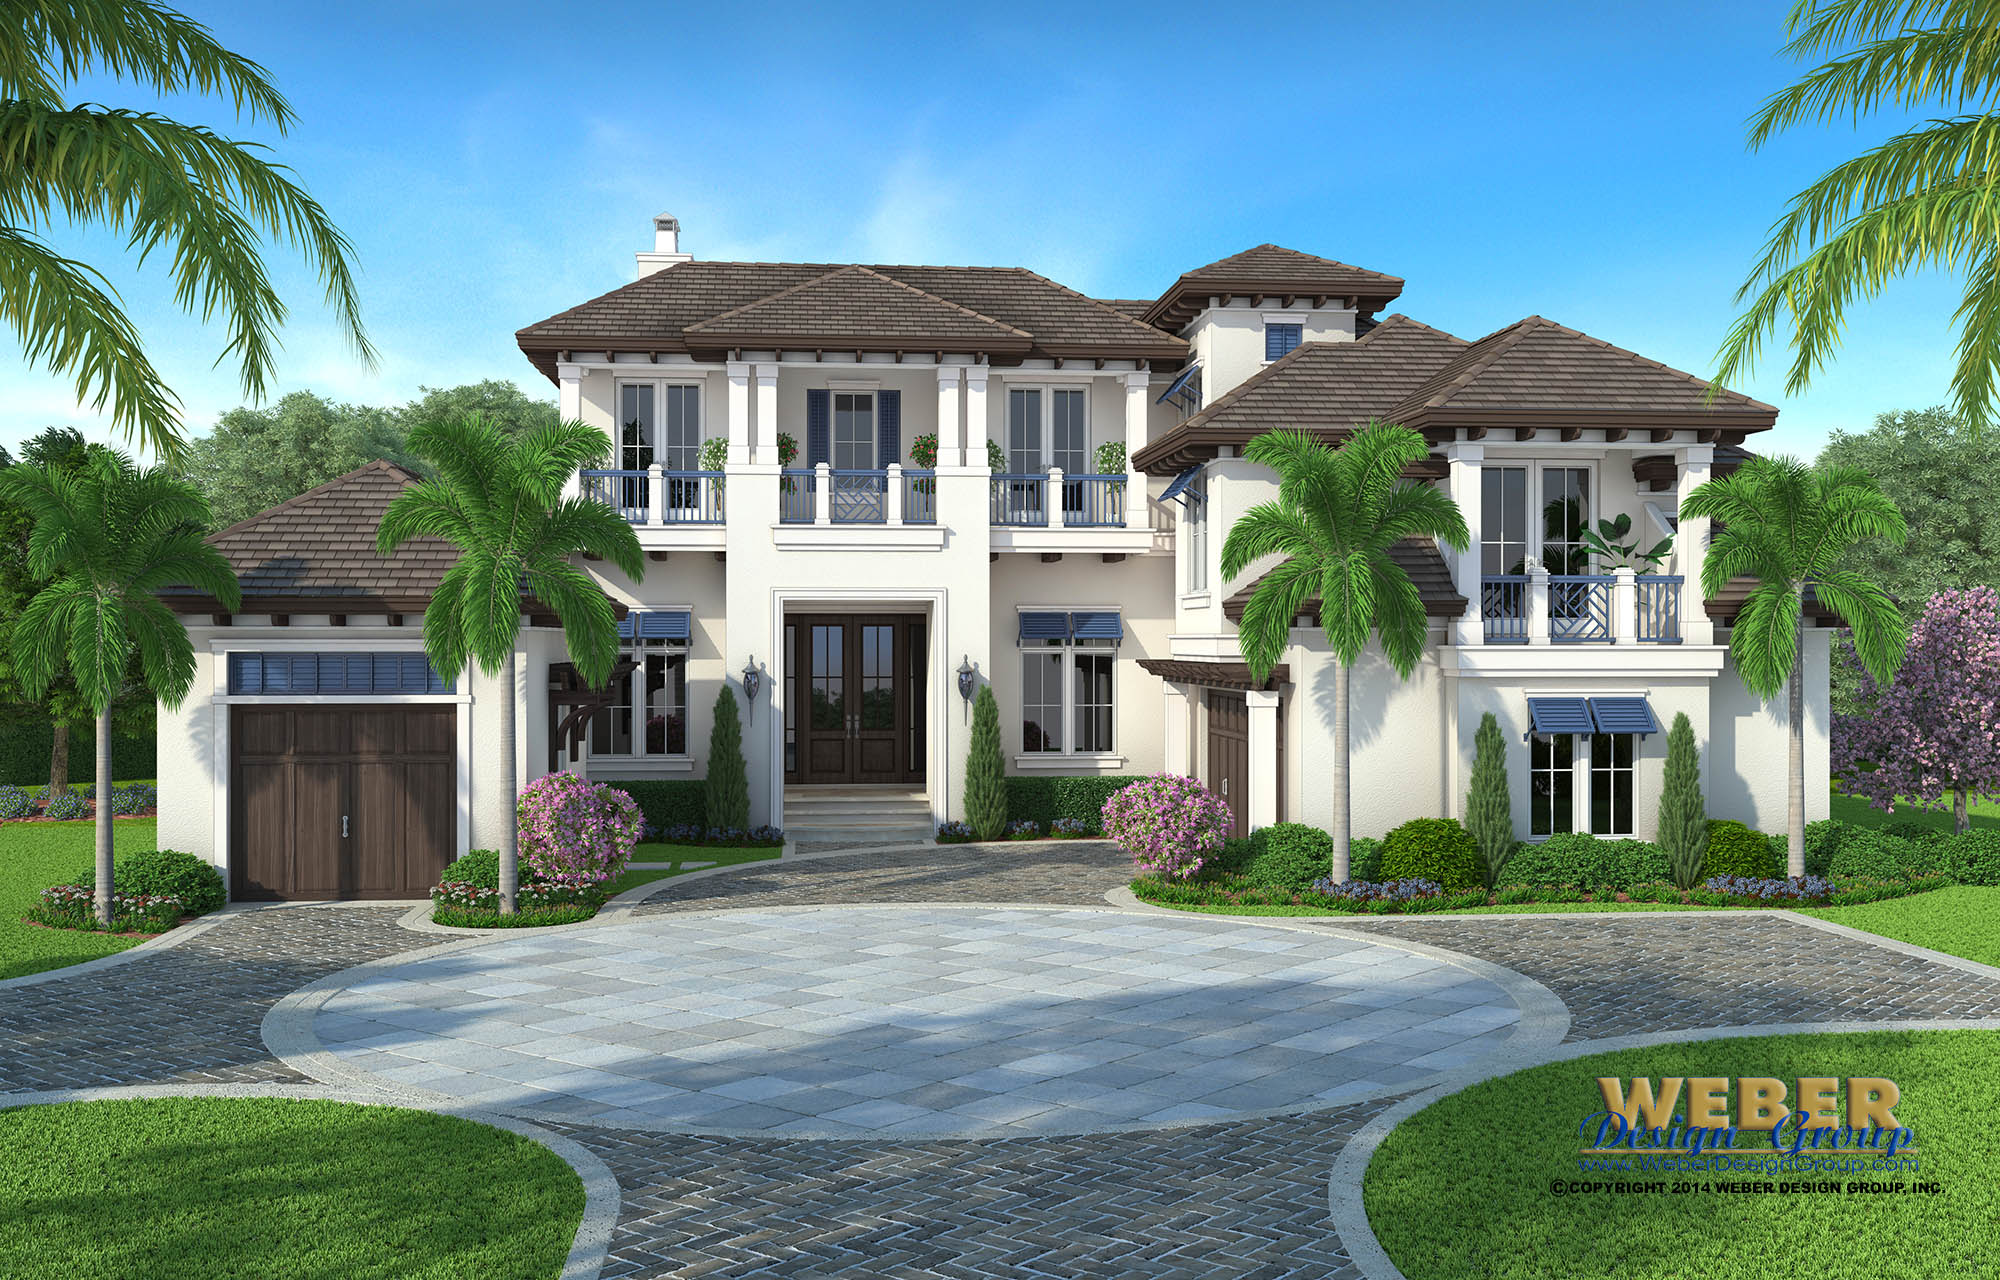 Waterfront House Plans Beach Cottage to Coastal Mansion Floor Plans